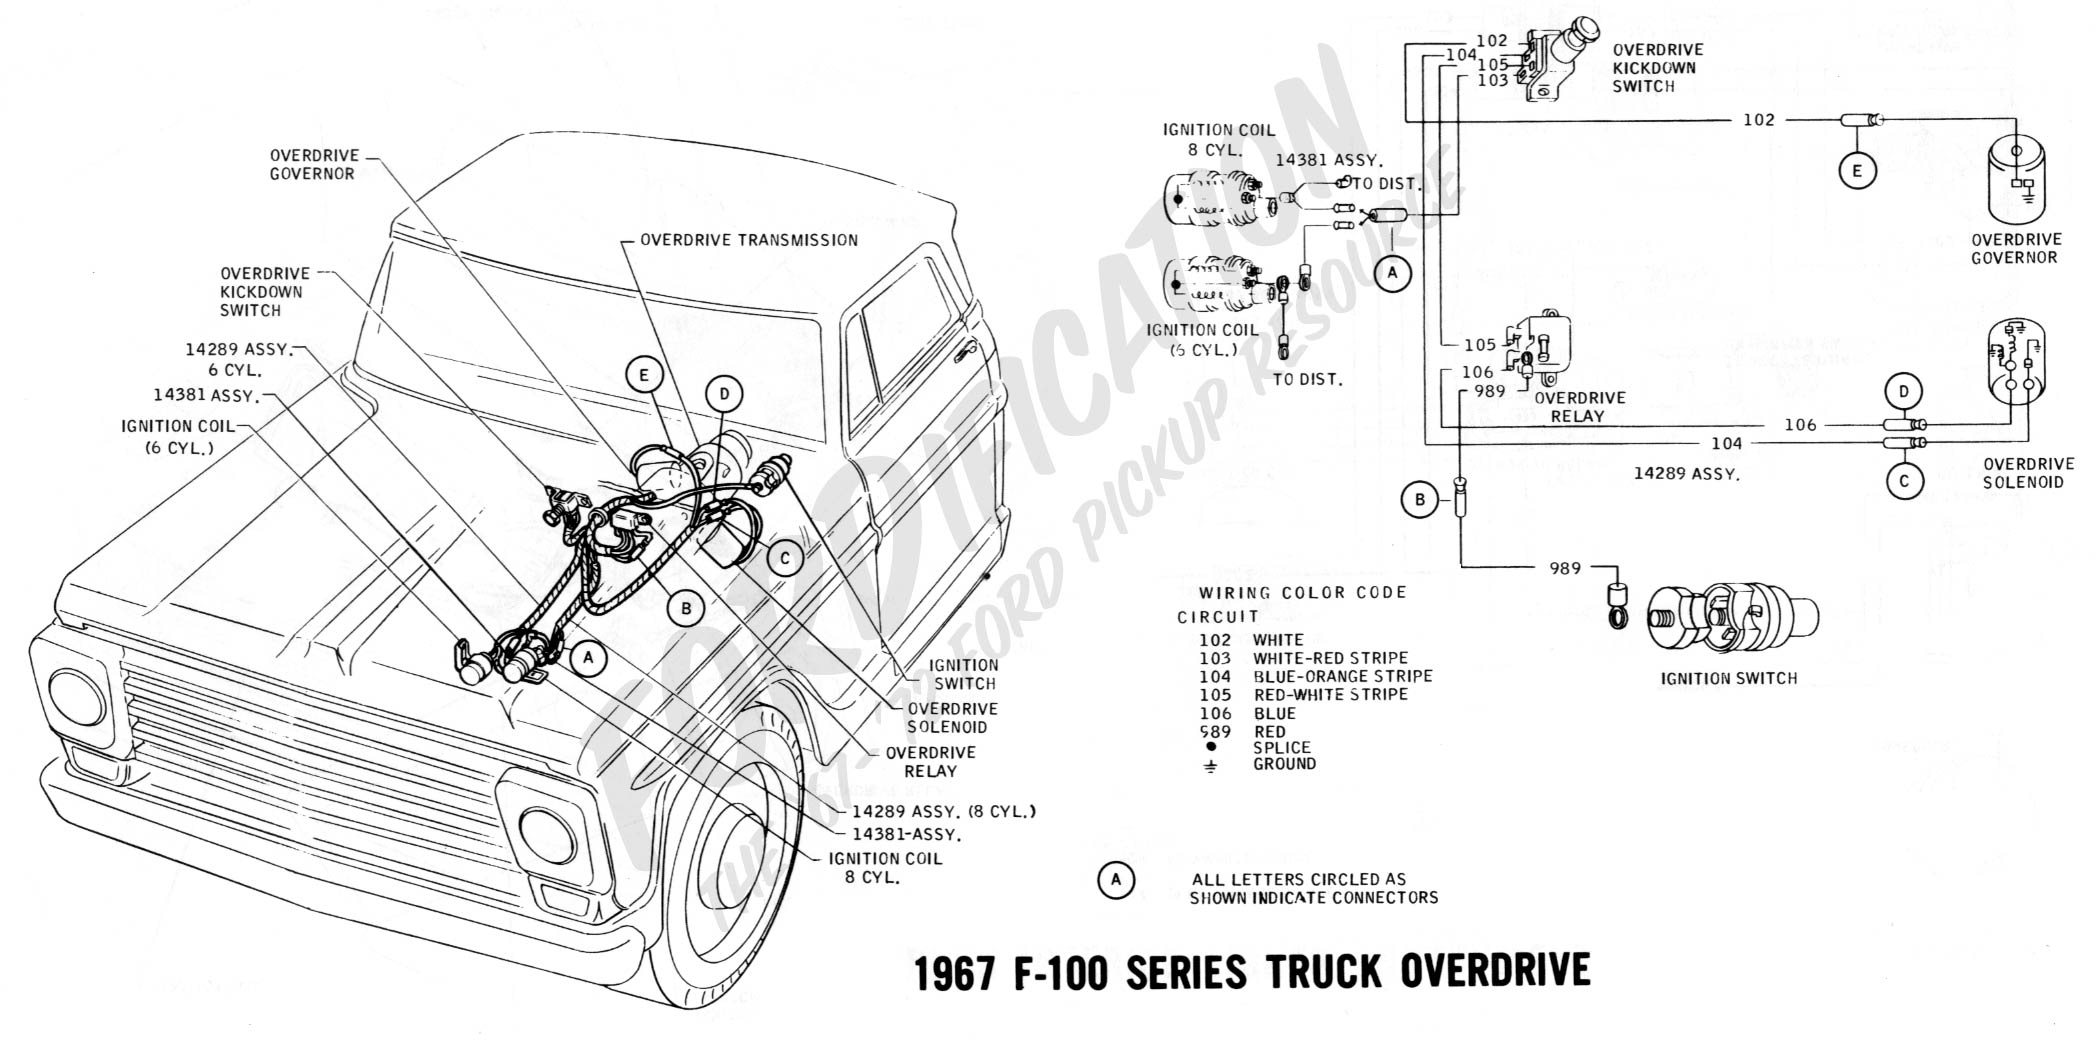 Ford F1 Wiring Harness List Of Schematic Circuit Diagram 1949 81 F100 Custom Simple Rh David Huggett Co Uk 1950 Truck